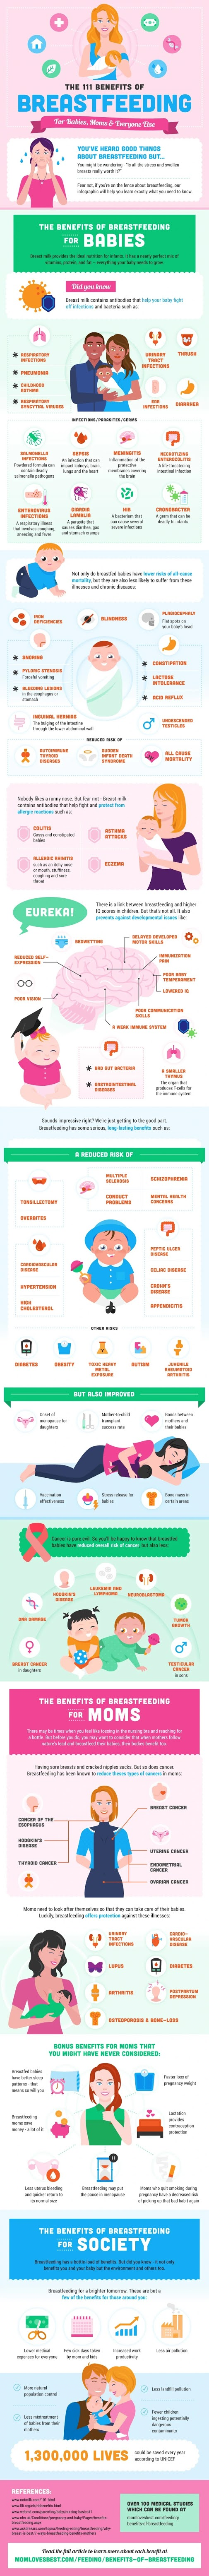 The 111 Benefits of Breastfeeding #infographic #Breastfeeding #infographics #Benefits #Babies